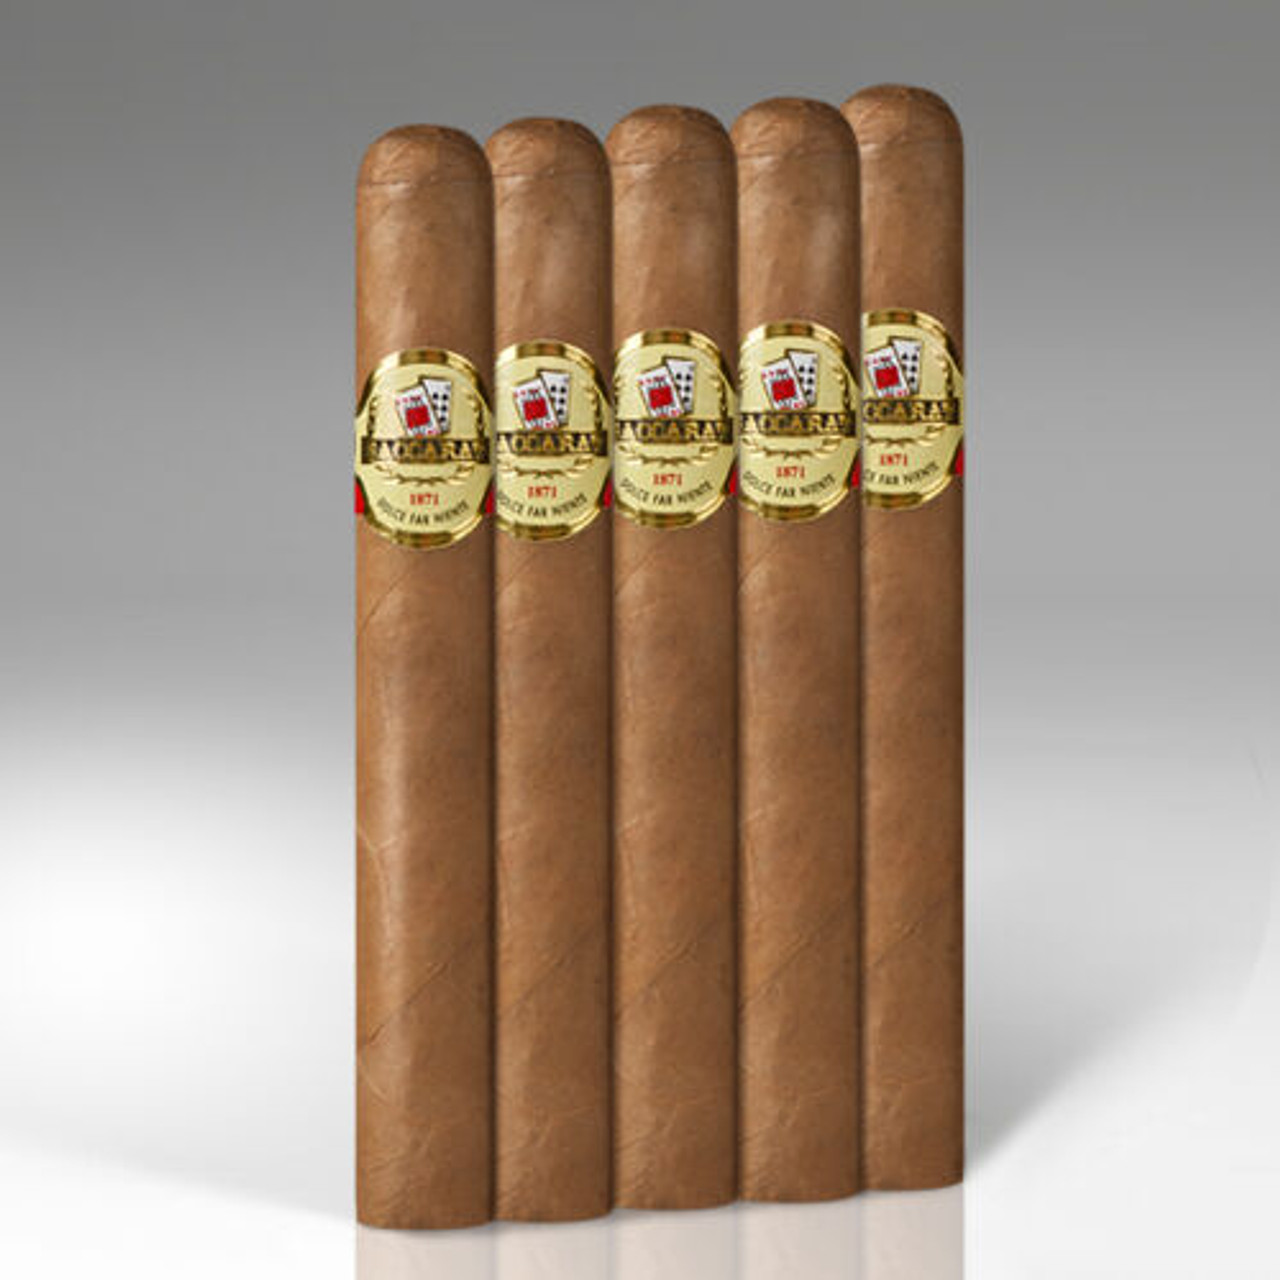 Baccarat Toro Cigars - 6 x 50 (Pack of 5)